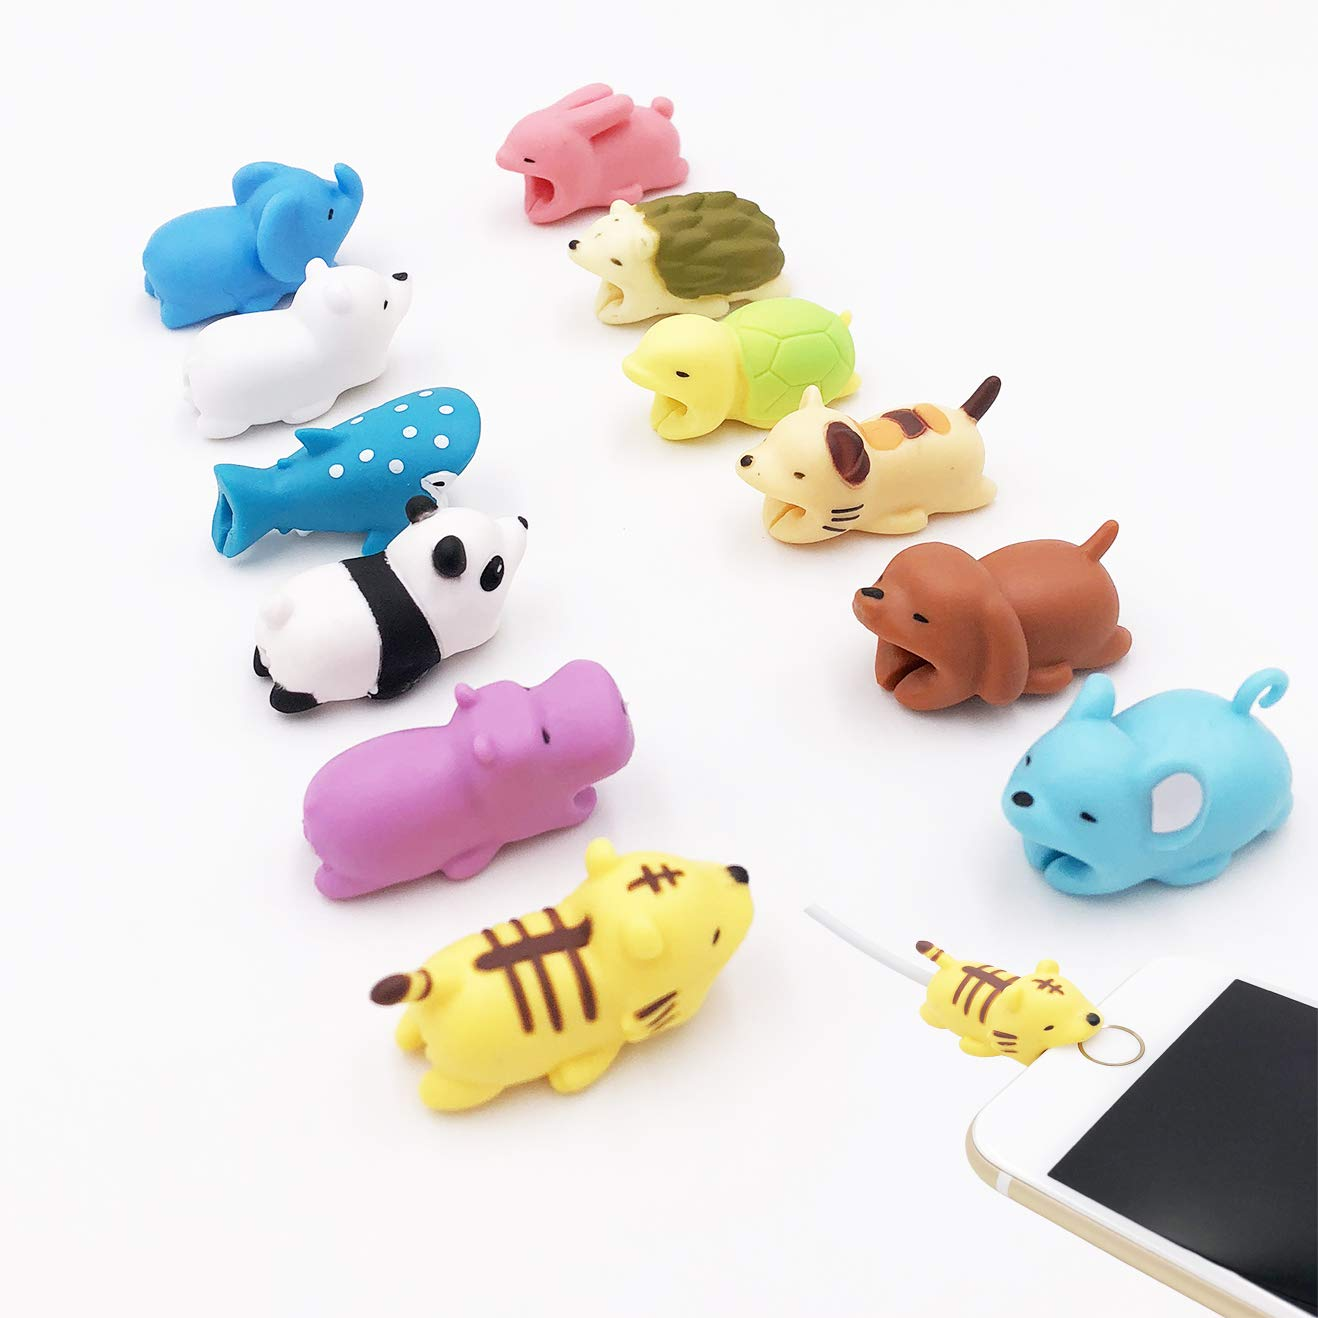 12-Pack LEHIAMZ Universal Cable Bite, Mini Cartoon Charging Cable Protector for iPhone USB Cable